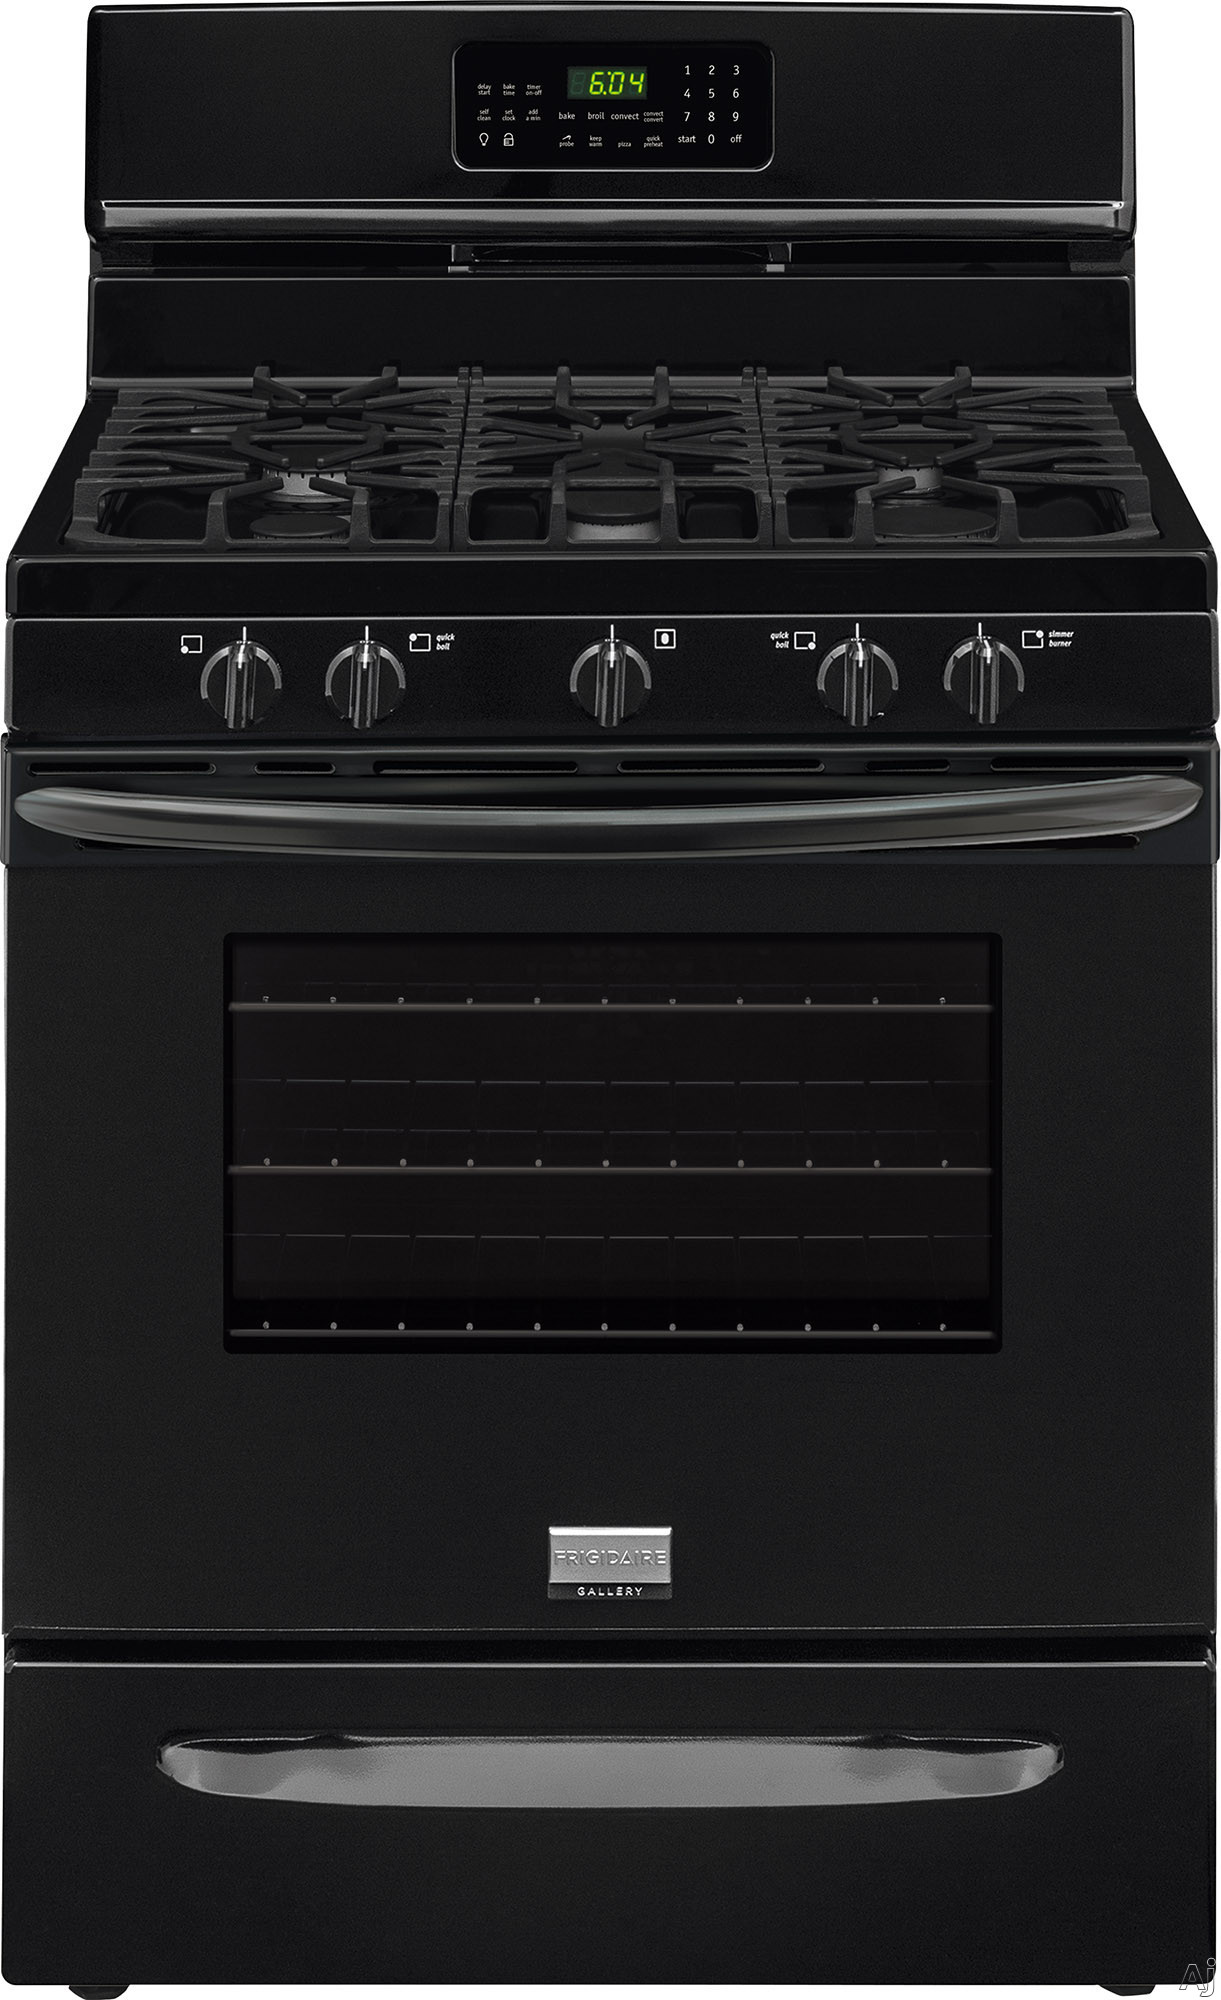 Frigidaire fggf3058rb 30 inch freestanding gas range with 5 sealed burners 5 0 cu ft true - Clean gas range keep looking new ...